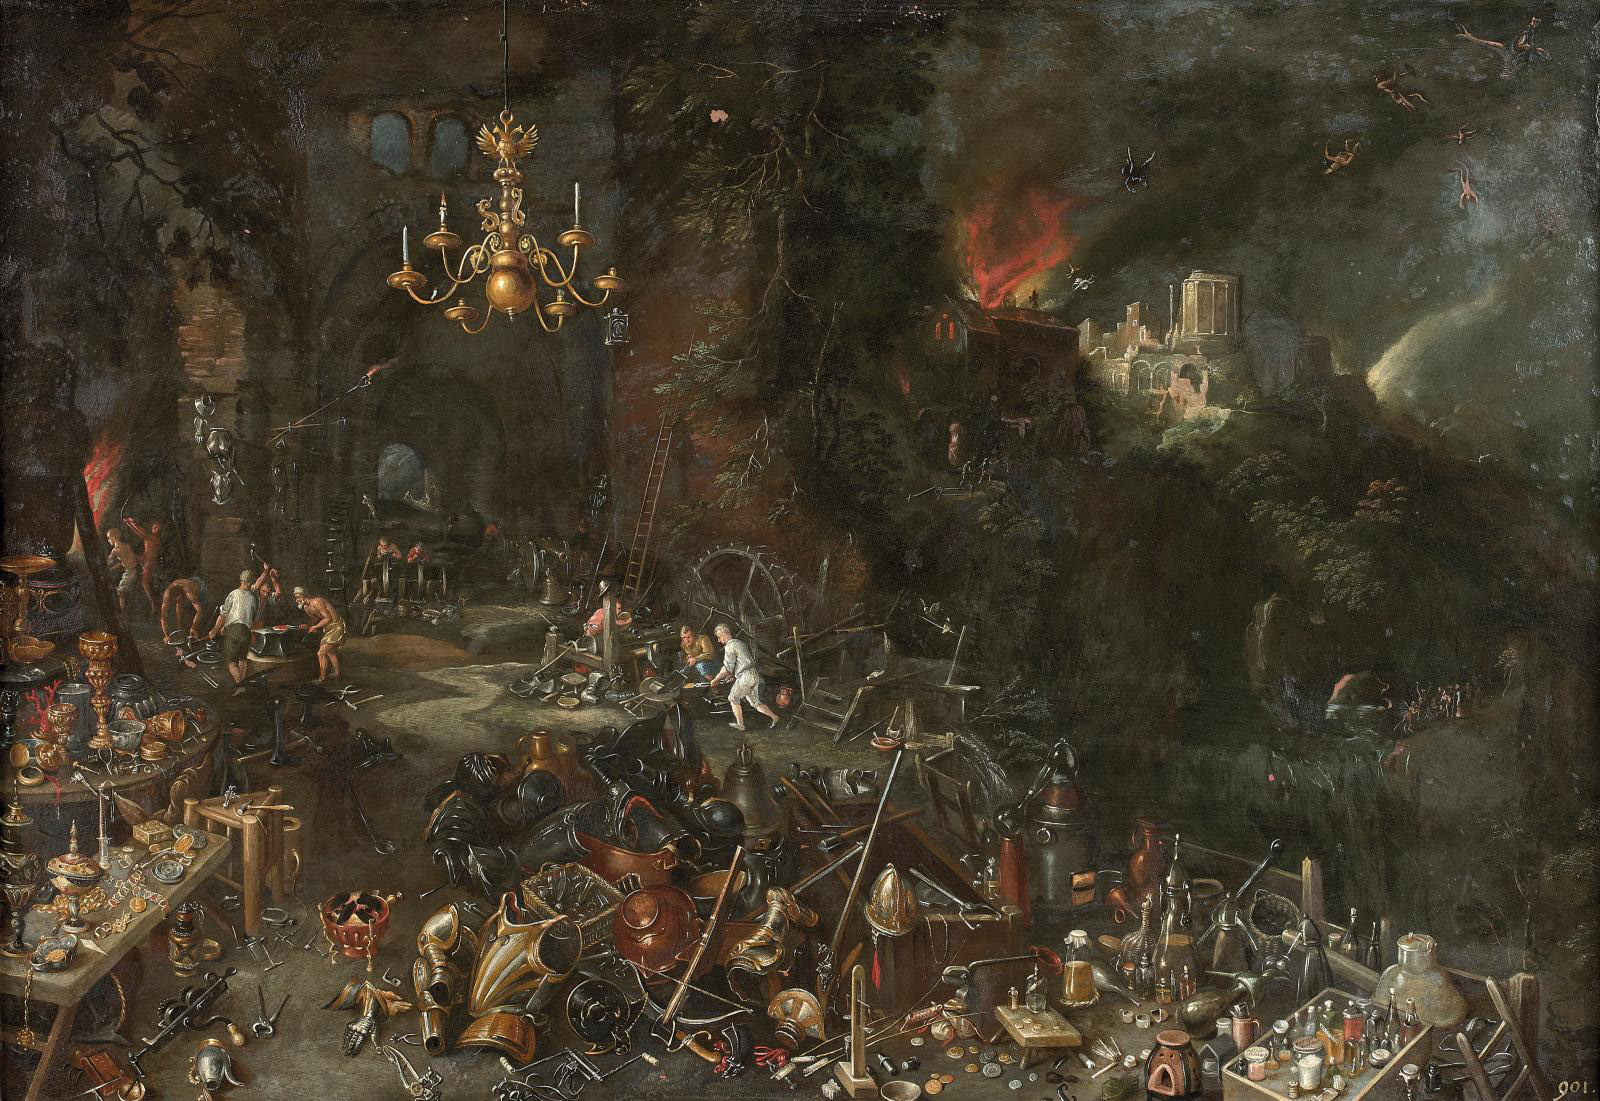 Fire by Jan Bruegel the Younger, detail, 45 x 67 cm (17.71 x 26.37 in).